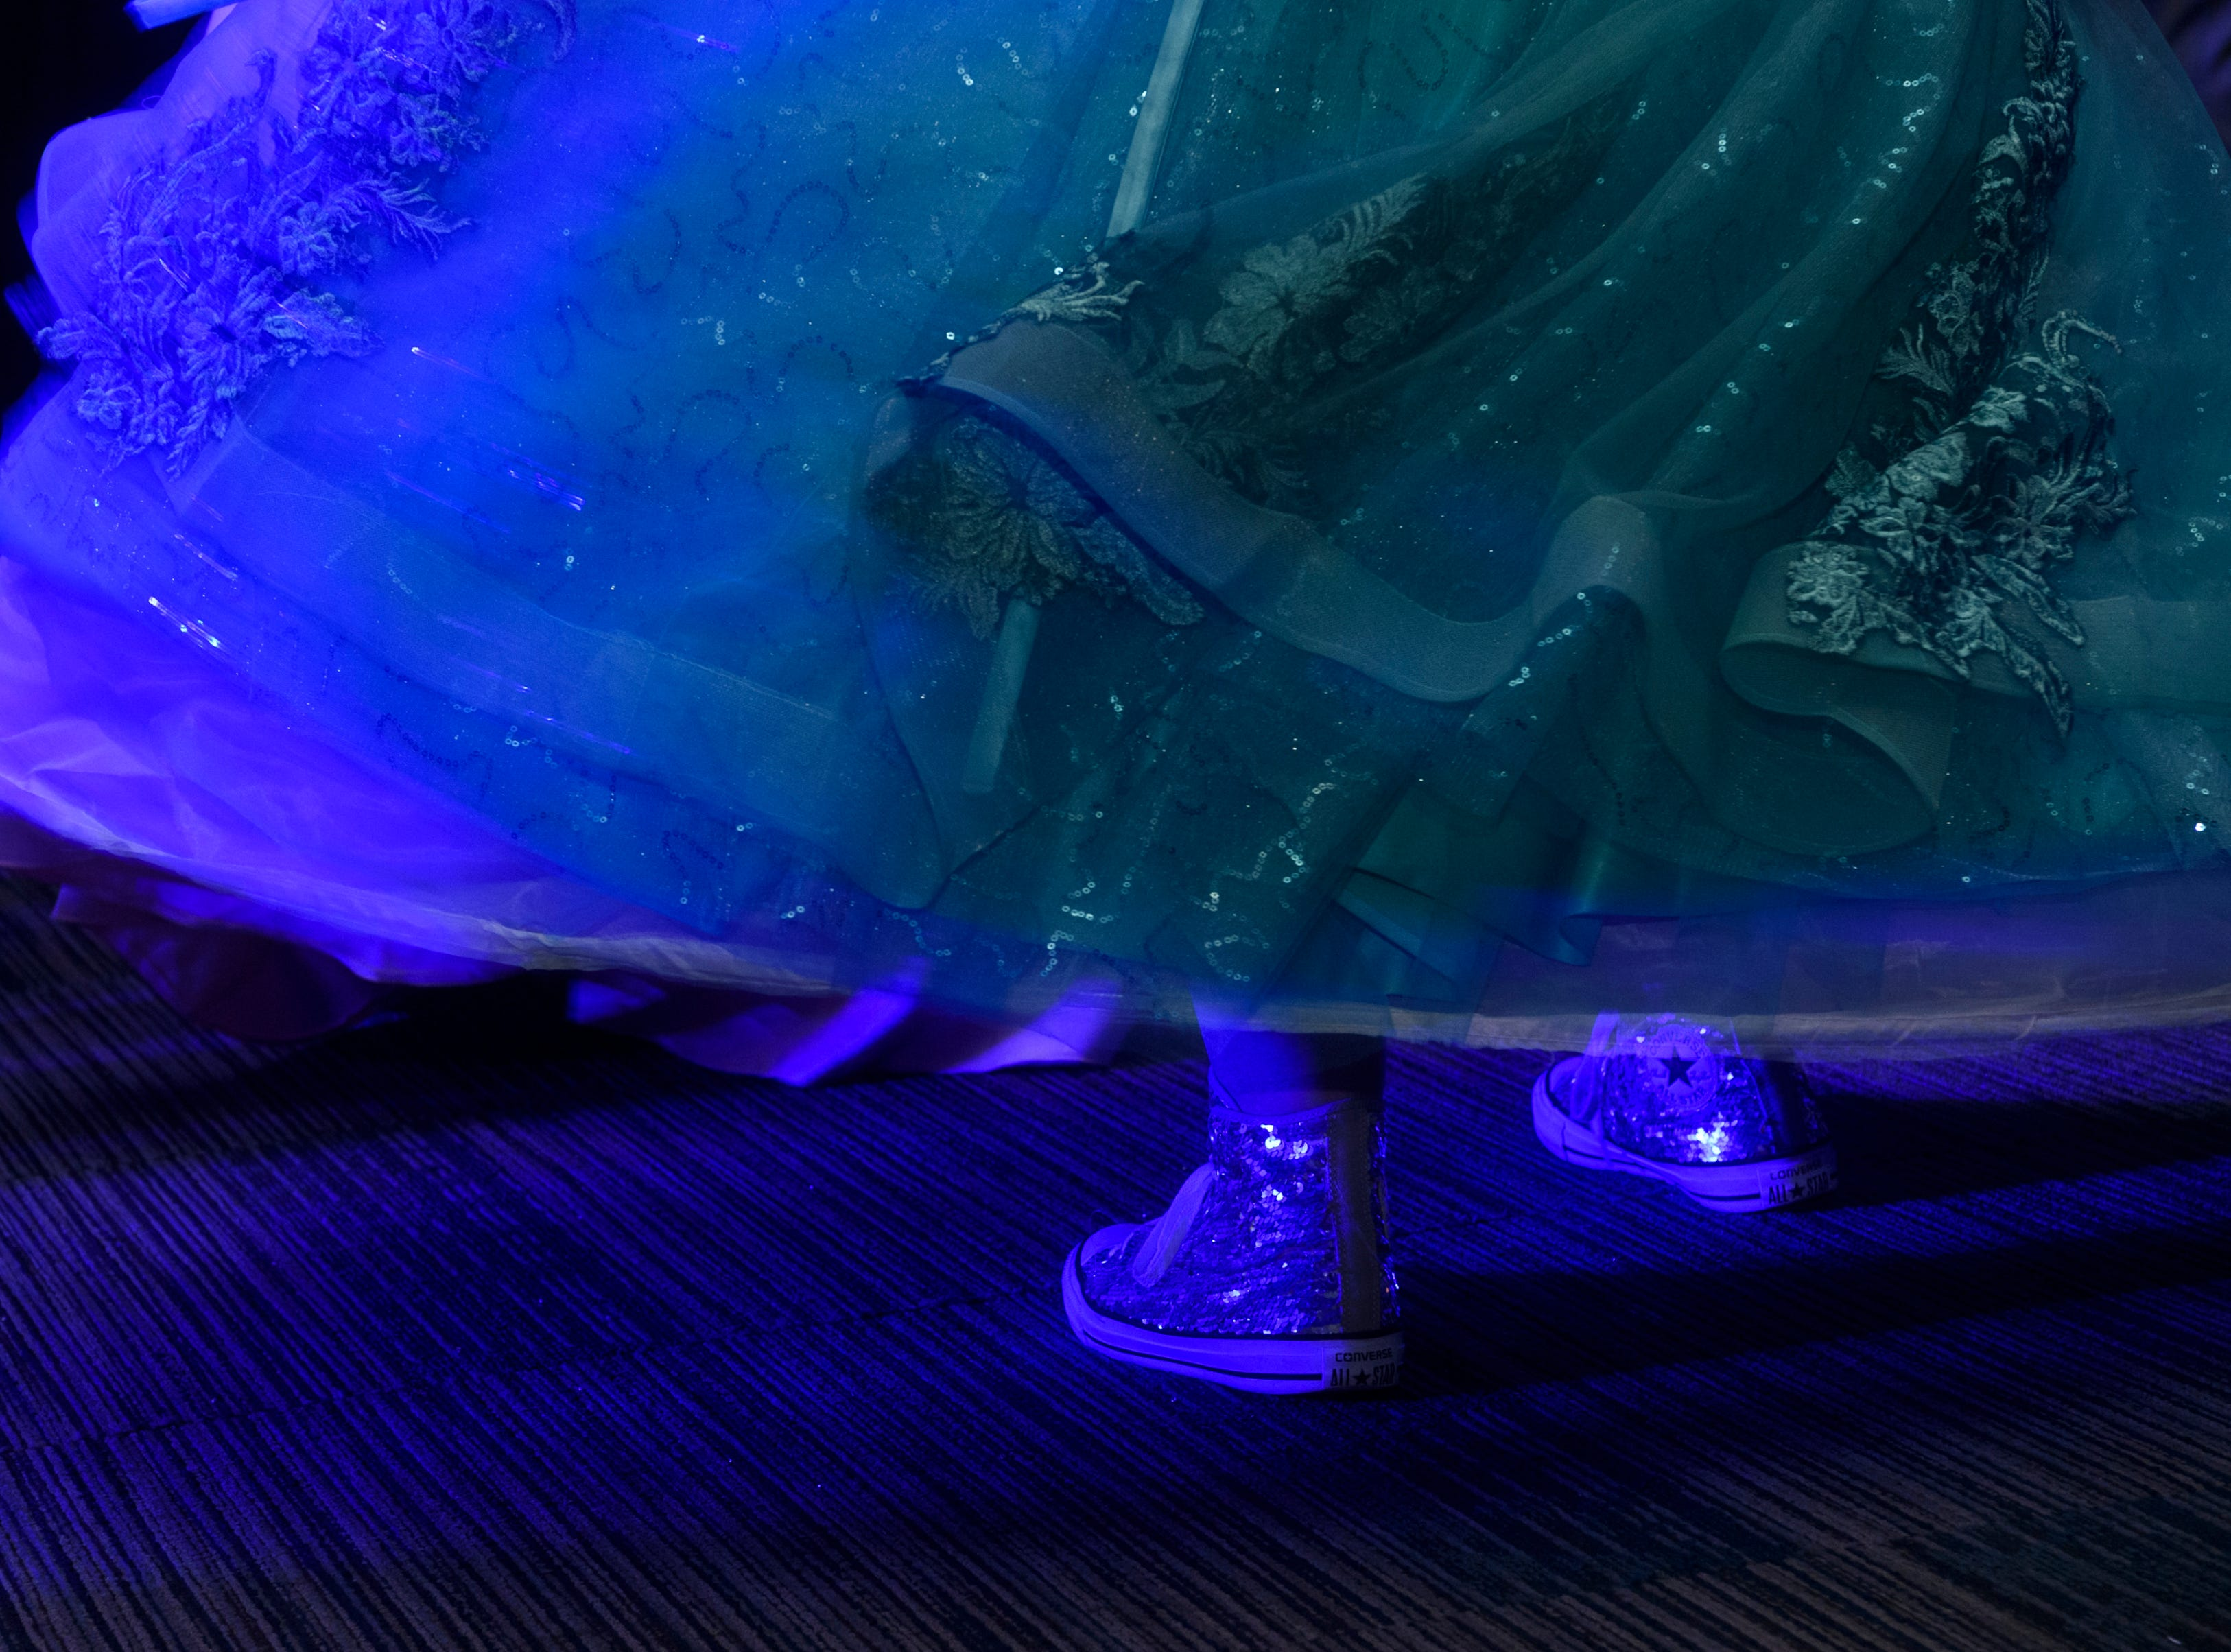 Mt. Vernon junior Alexis Adamaitis, left, dons glittery Converse Chuck Taylor shoes as she dances during prom held inside the University of Southern Indiana's Carter Hall in Evansville, Ind., Saturday, May 4, 2019.